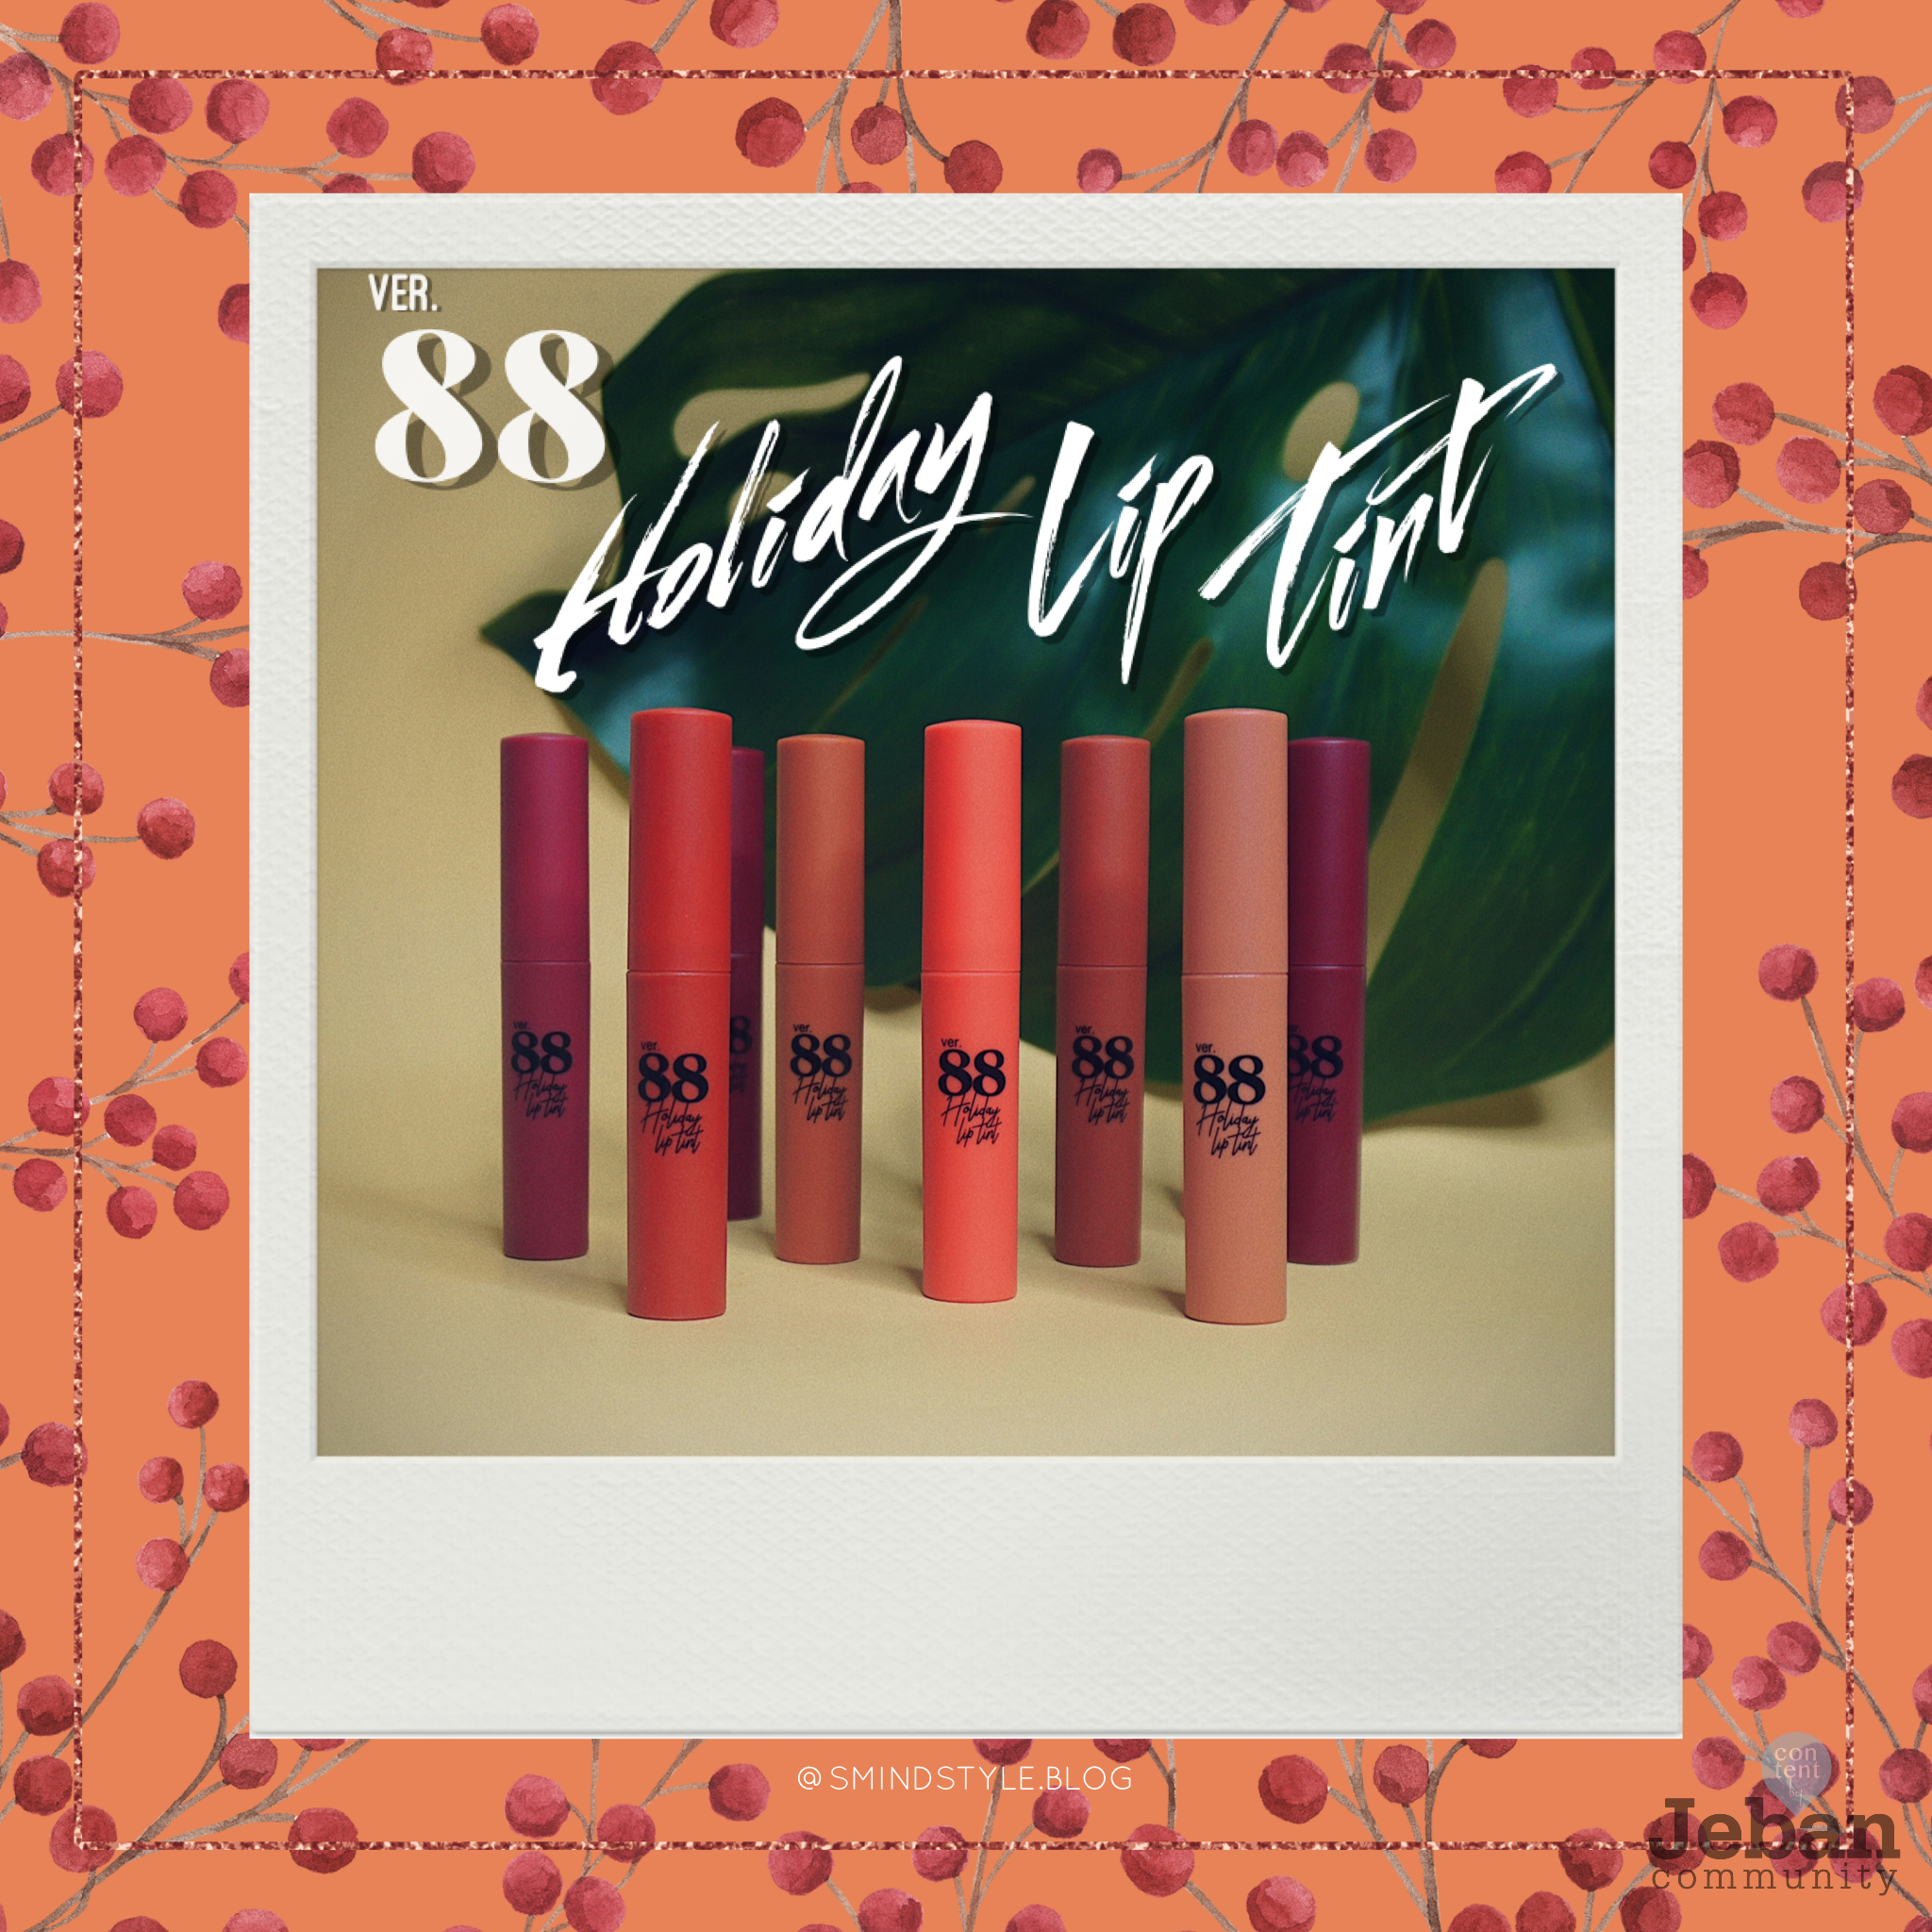 Ver.88 Holiday Lip Tint